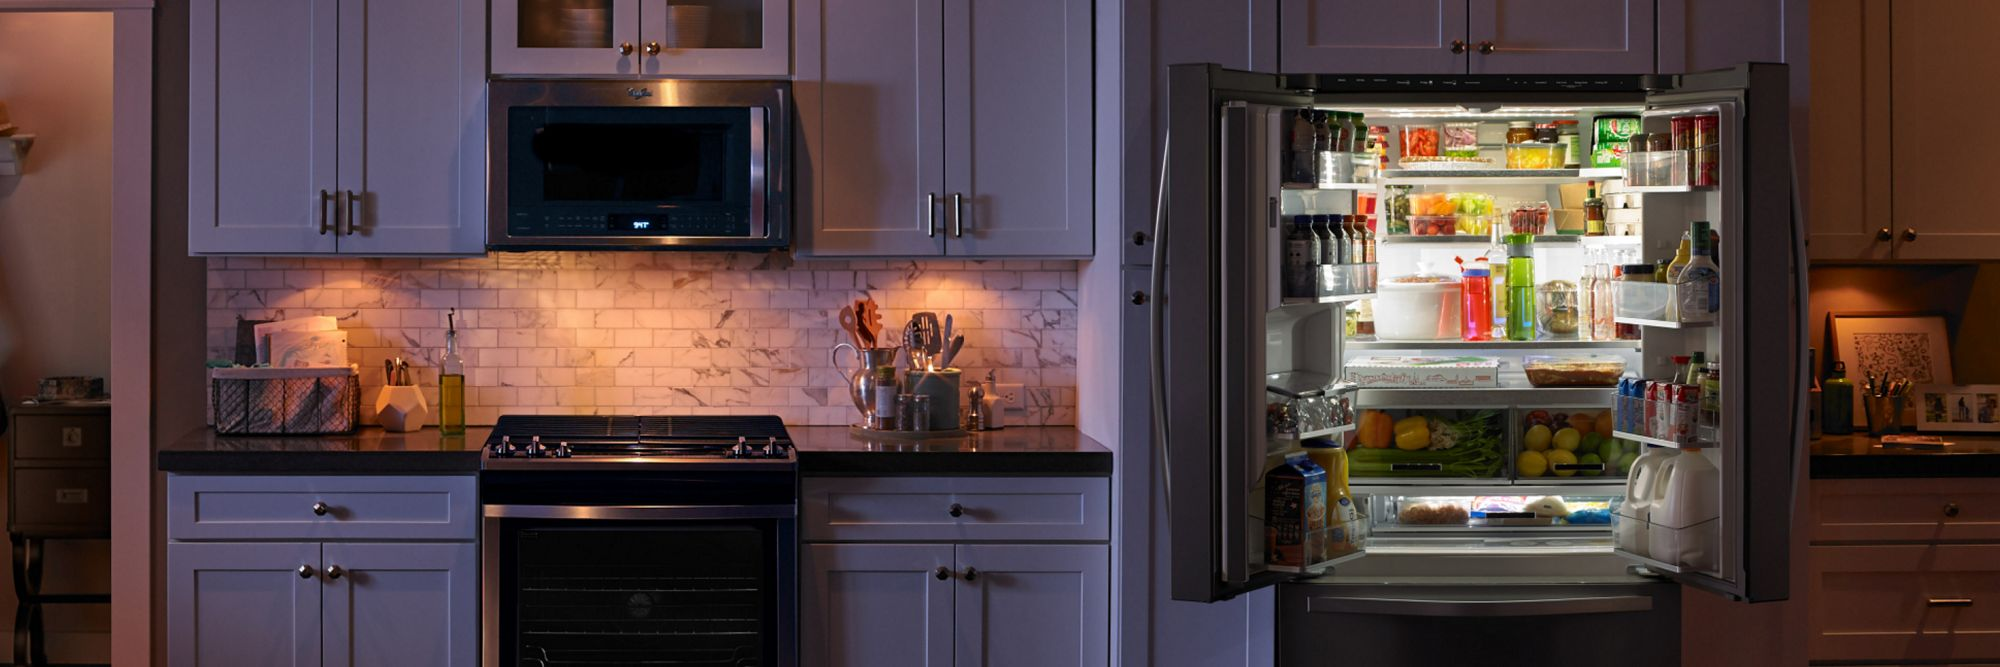 100 How Much Does It Cost To Install Kitchen Cabinets How Much Are Kitchen Cabinet Doors